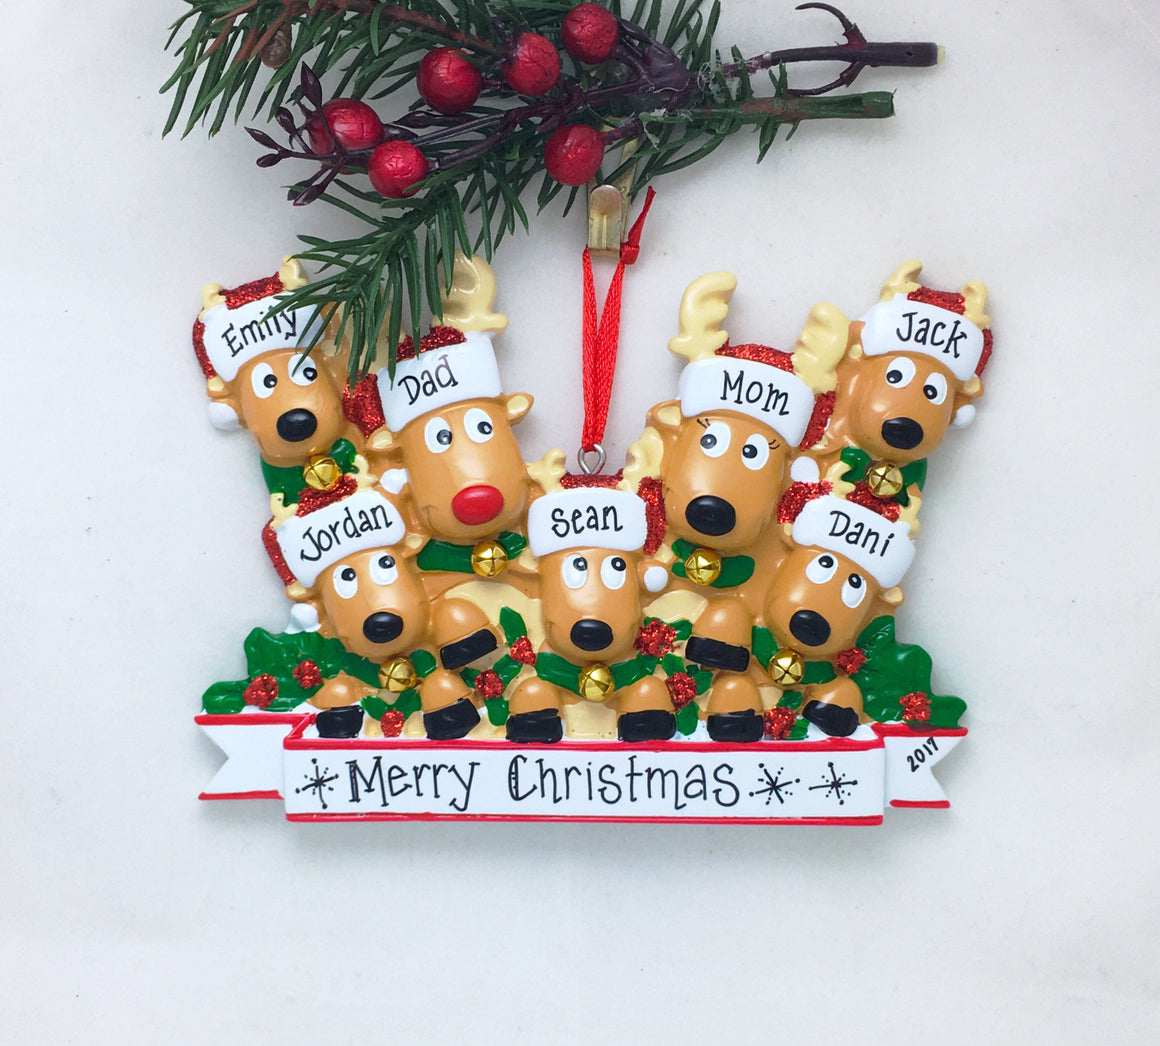 7 Reindeer with Bells Personalized Christmas Ornament